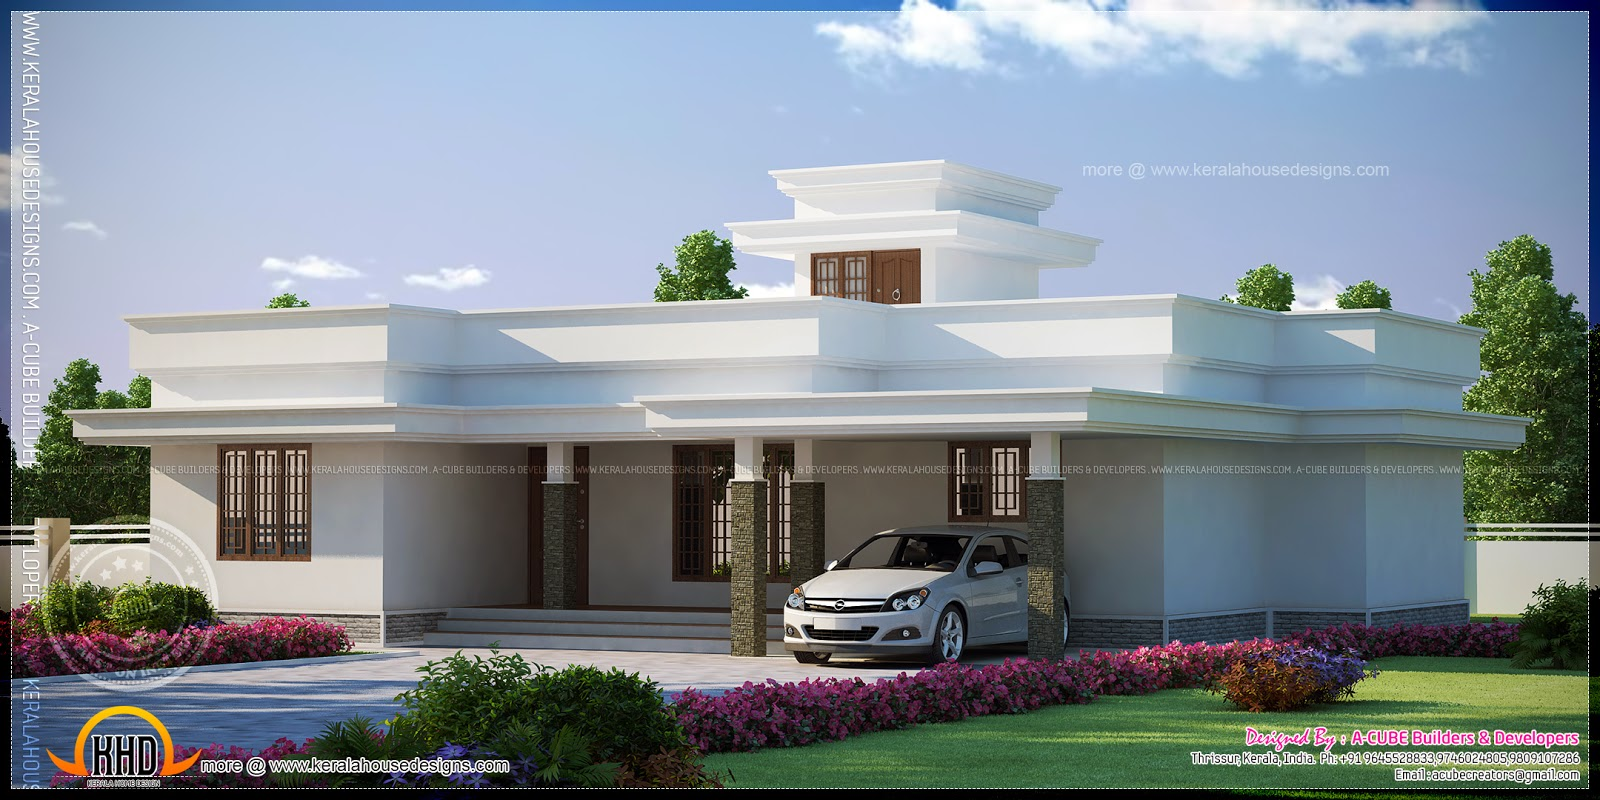 Contemporary flat roof single storied house model kerala Modern flat roof house designs